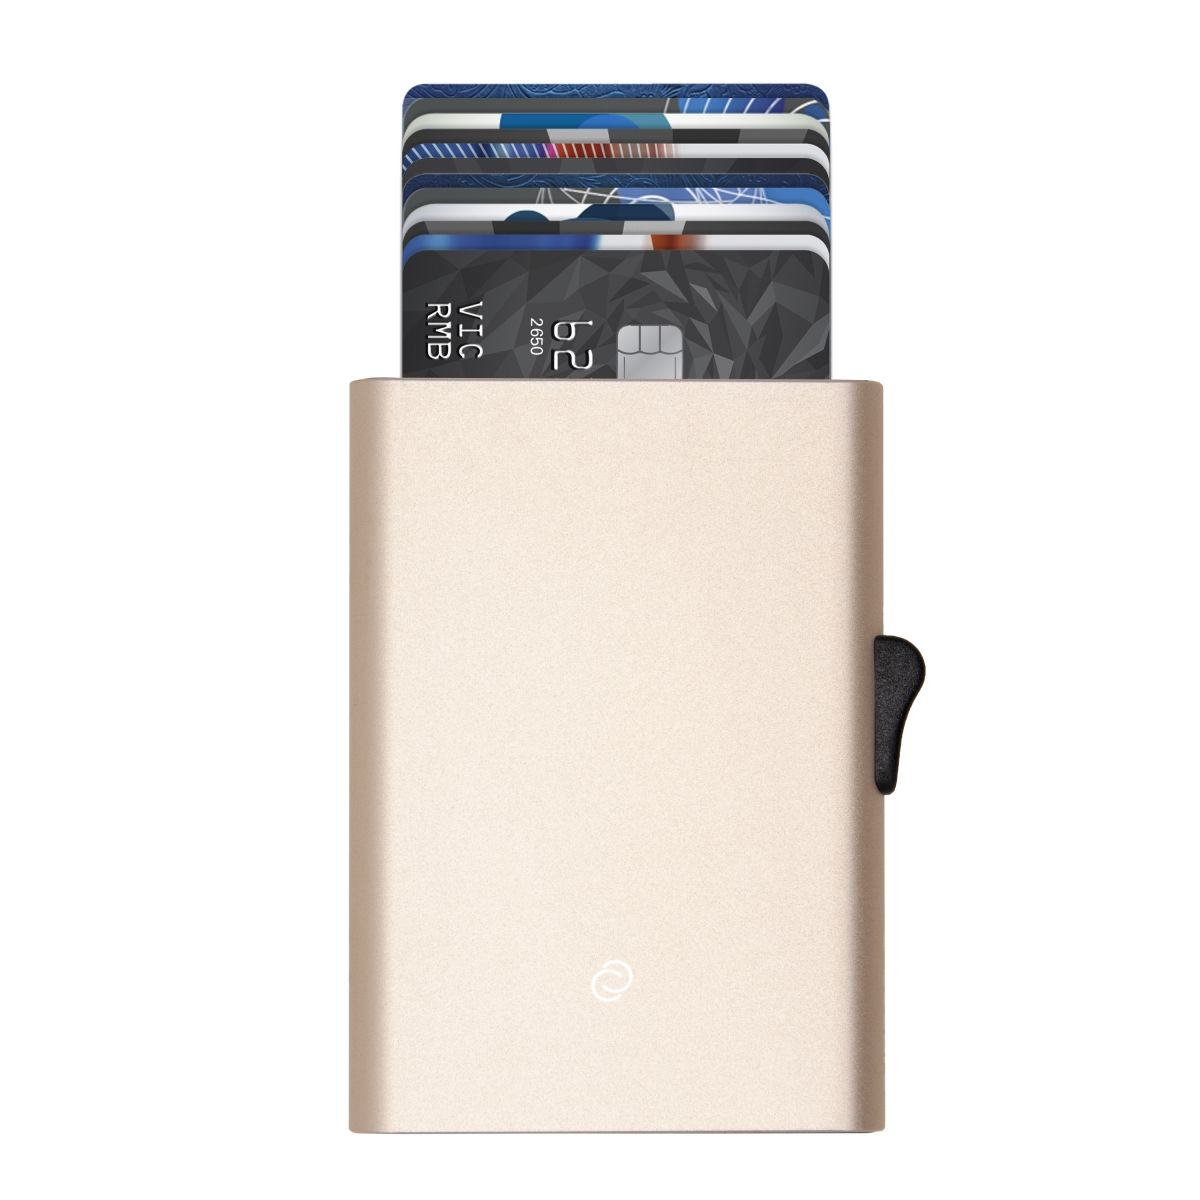 C-Secure Slim RFID XL Aluminum Card Holder - Gold